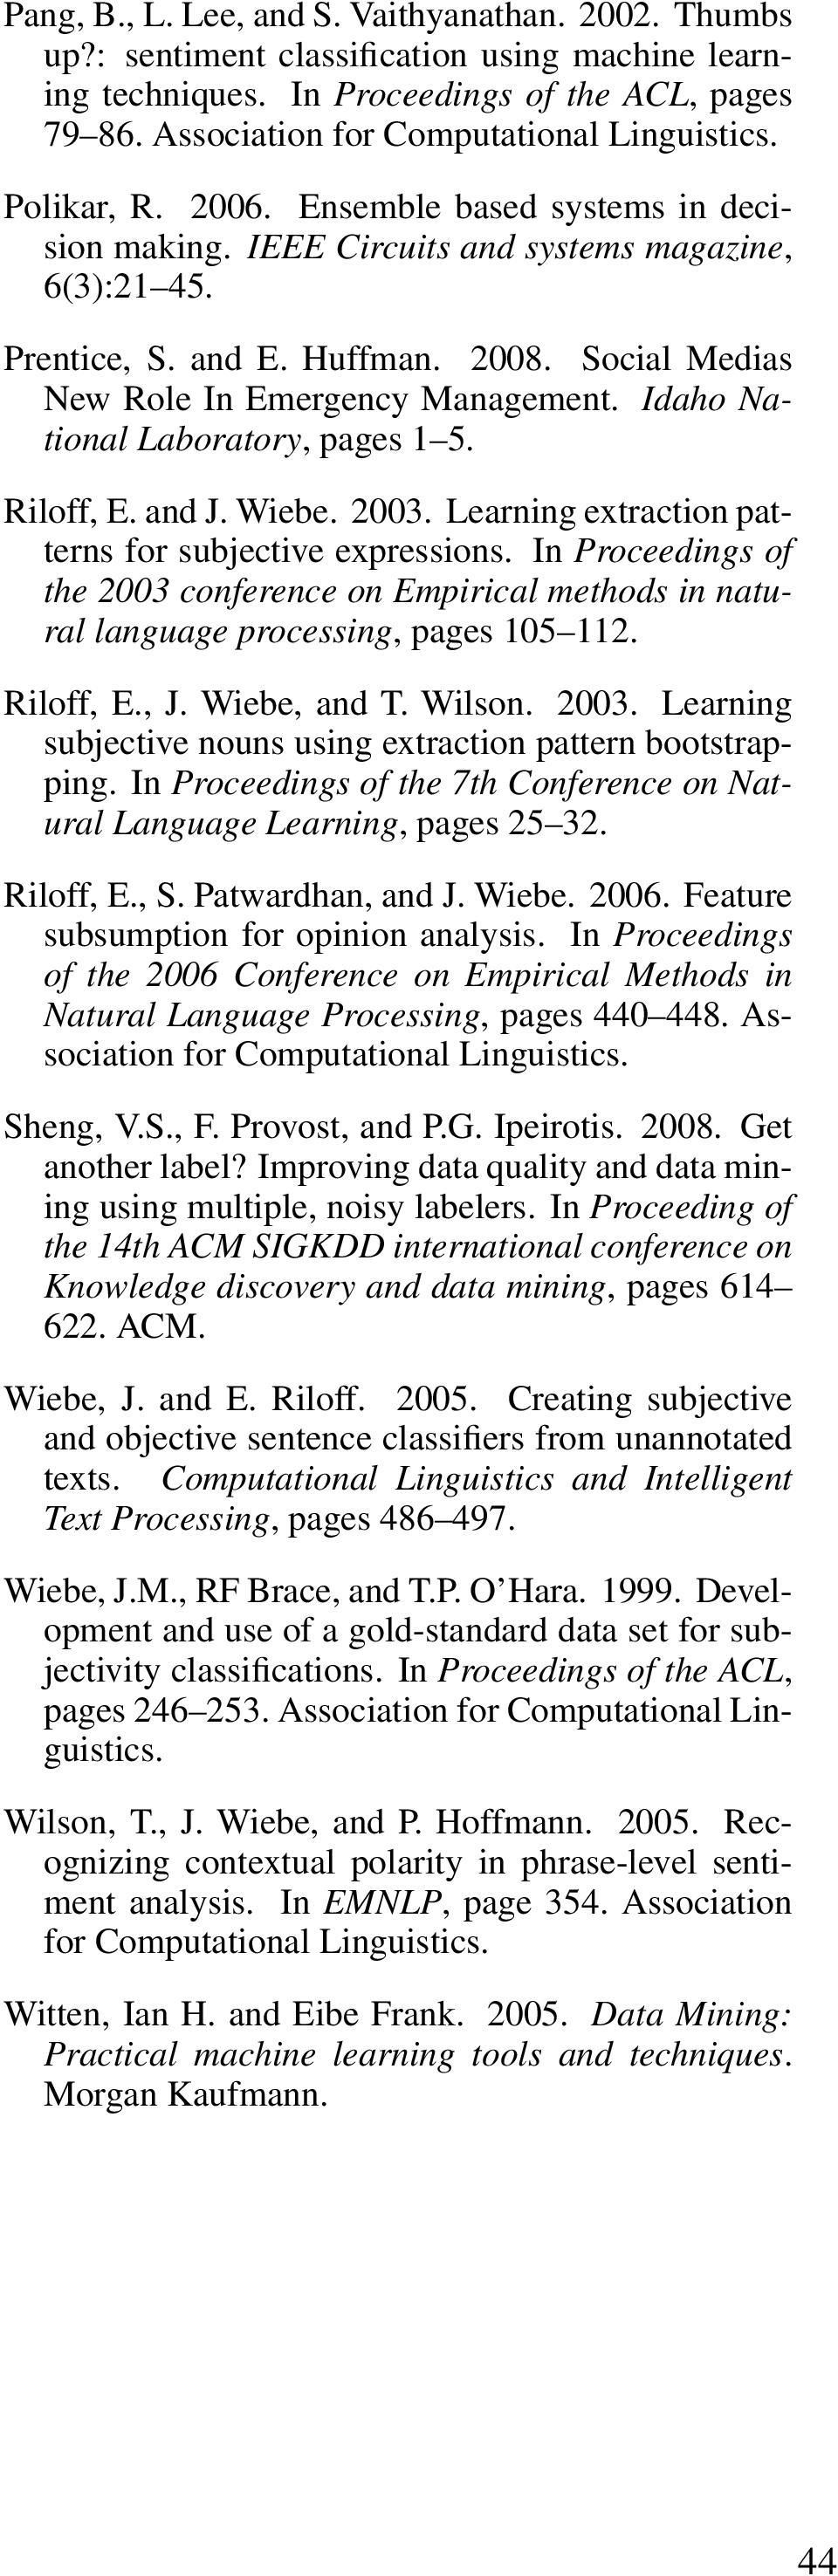 Idaho National Laboratory, pages 1 5. Riloff, E. and J. Wiebe. 2003. Learning extraction patterns for subjective expressions.